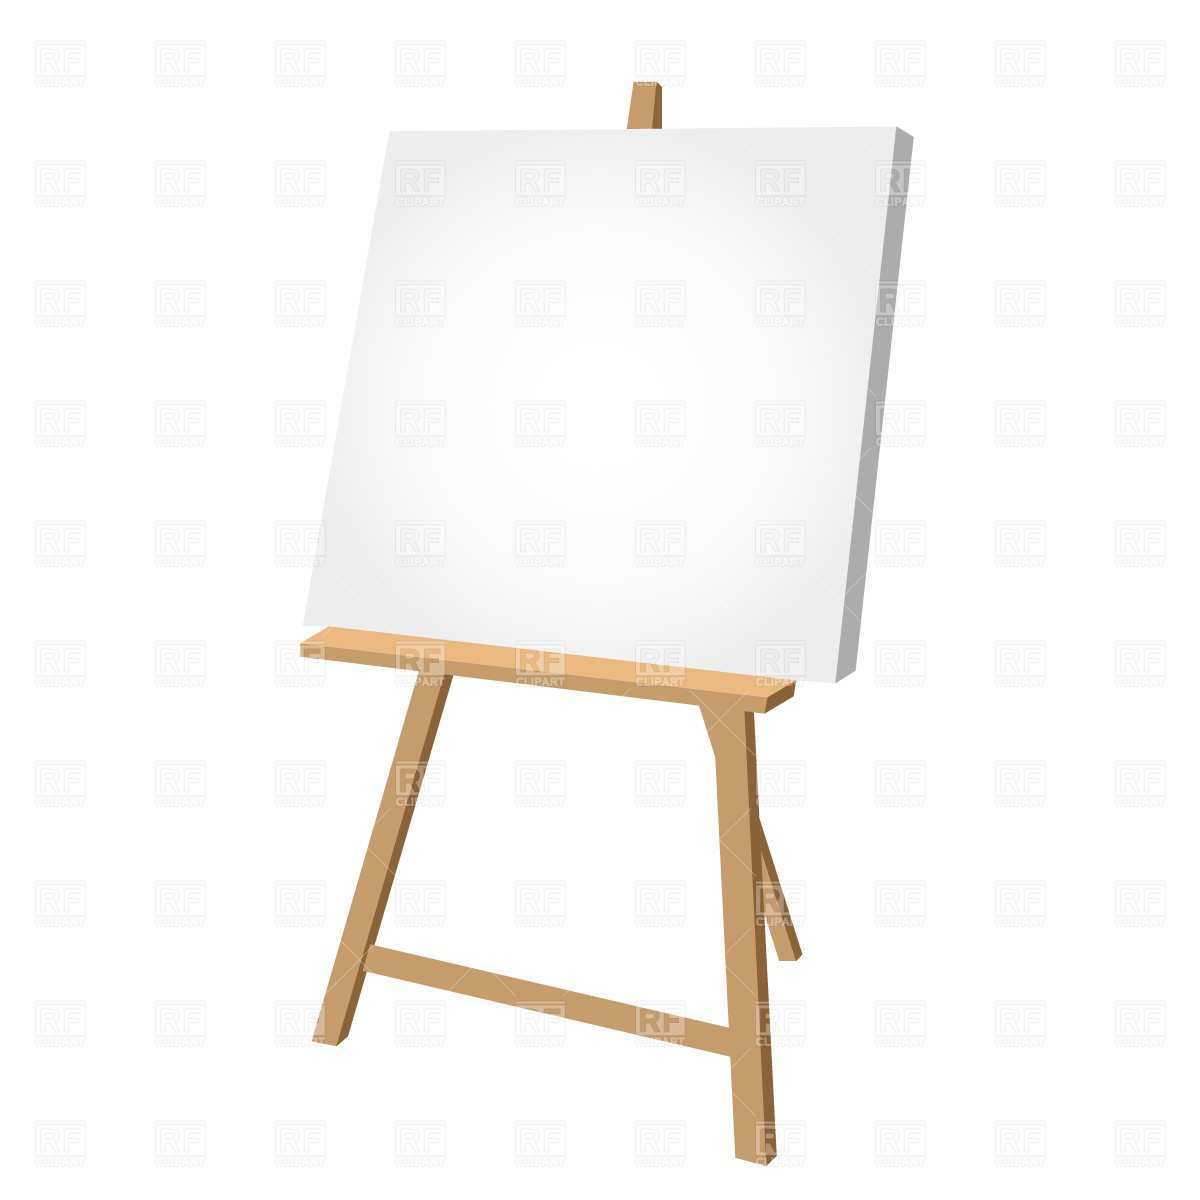 1200x1200 Large Blank Canvas For Painting Lovely Blank Easel 625 Objects